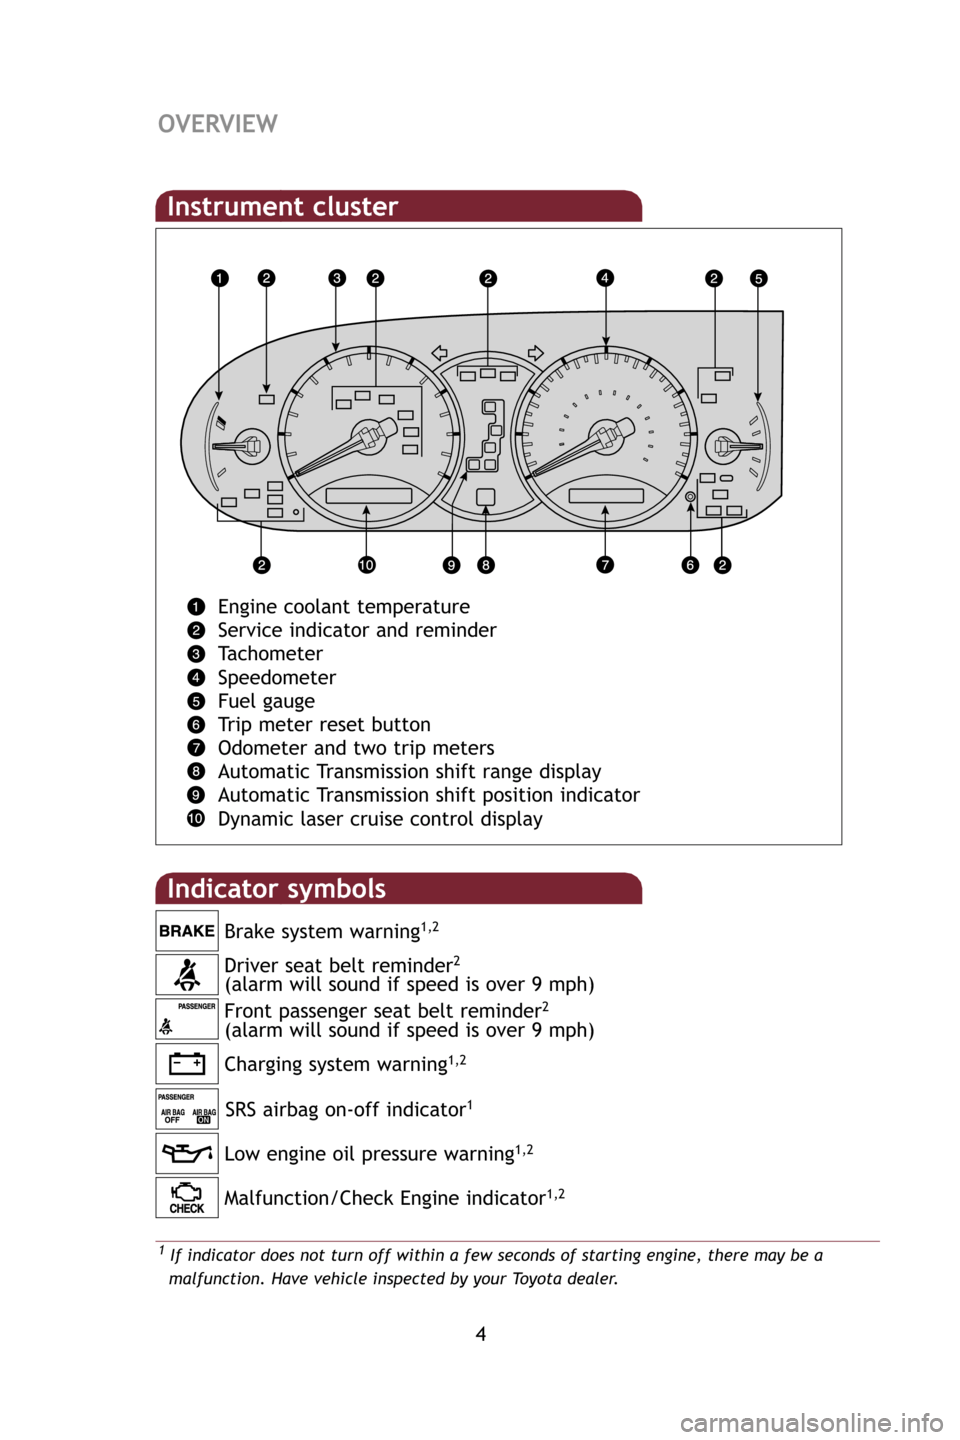 TOYOTA AVALON 2009 XX30 / 3.G Quick Reference Guide